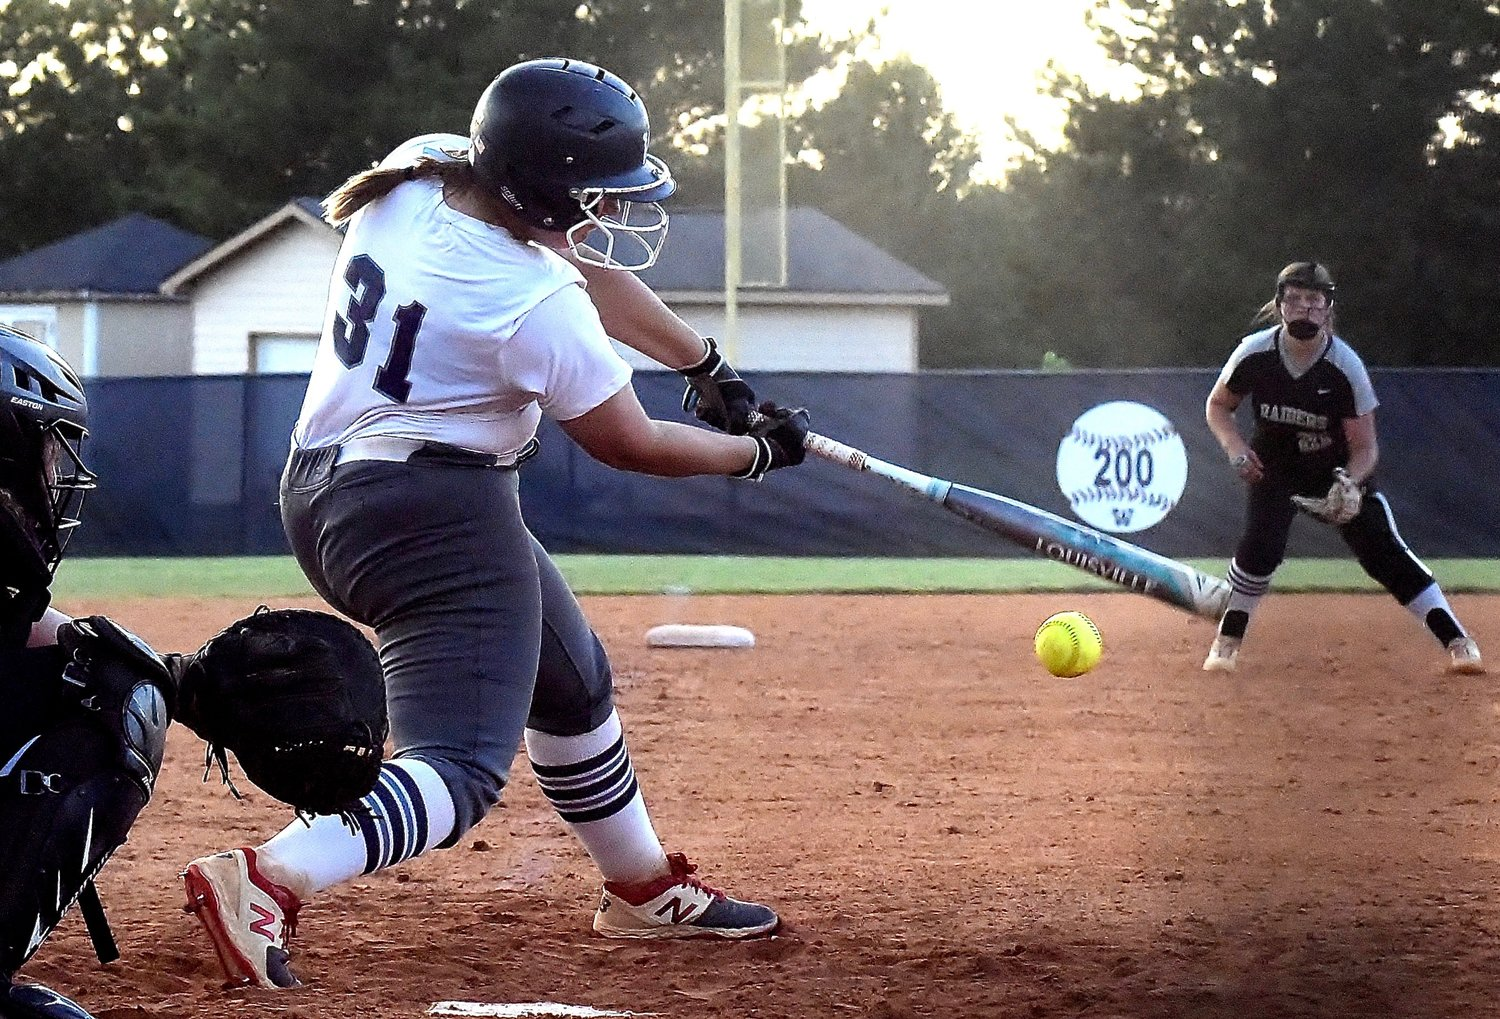 Woodland's Kendyl Hardin pulls a two-run double down the third base line in the fifth inning during Monday's home game against East Paulding. Hardin finished 1-for-3 with a walk and two RBIs in a 5-3 loss.